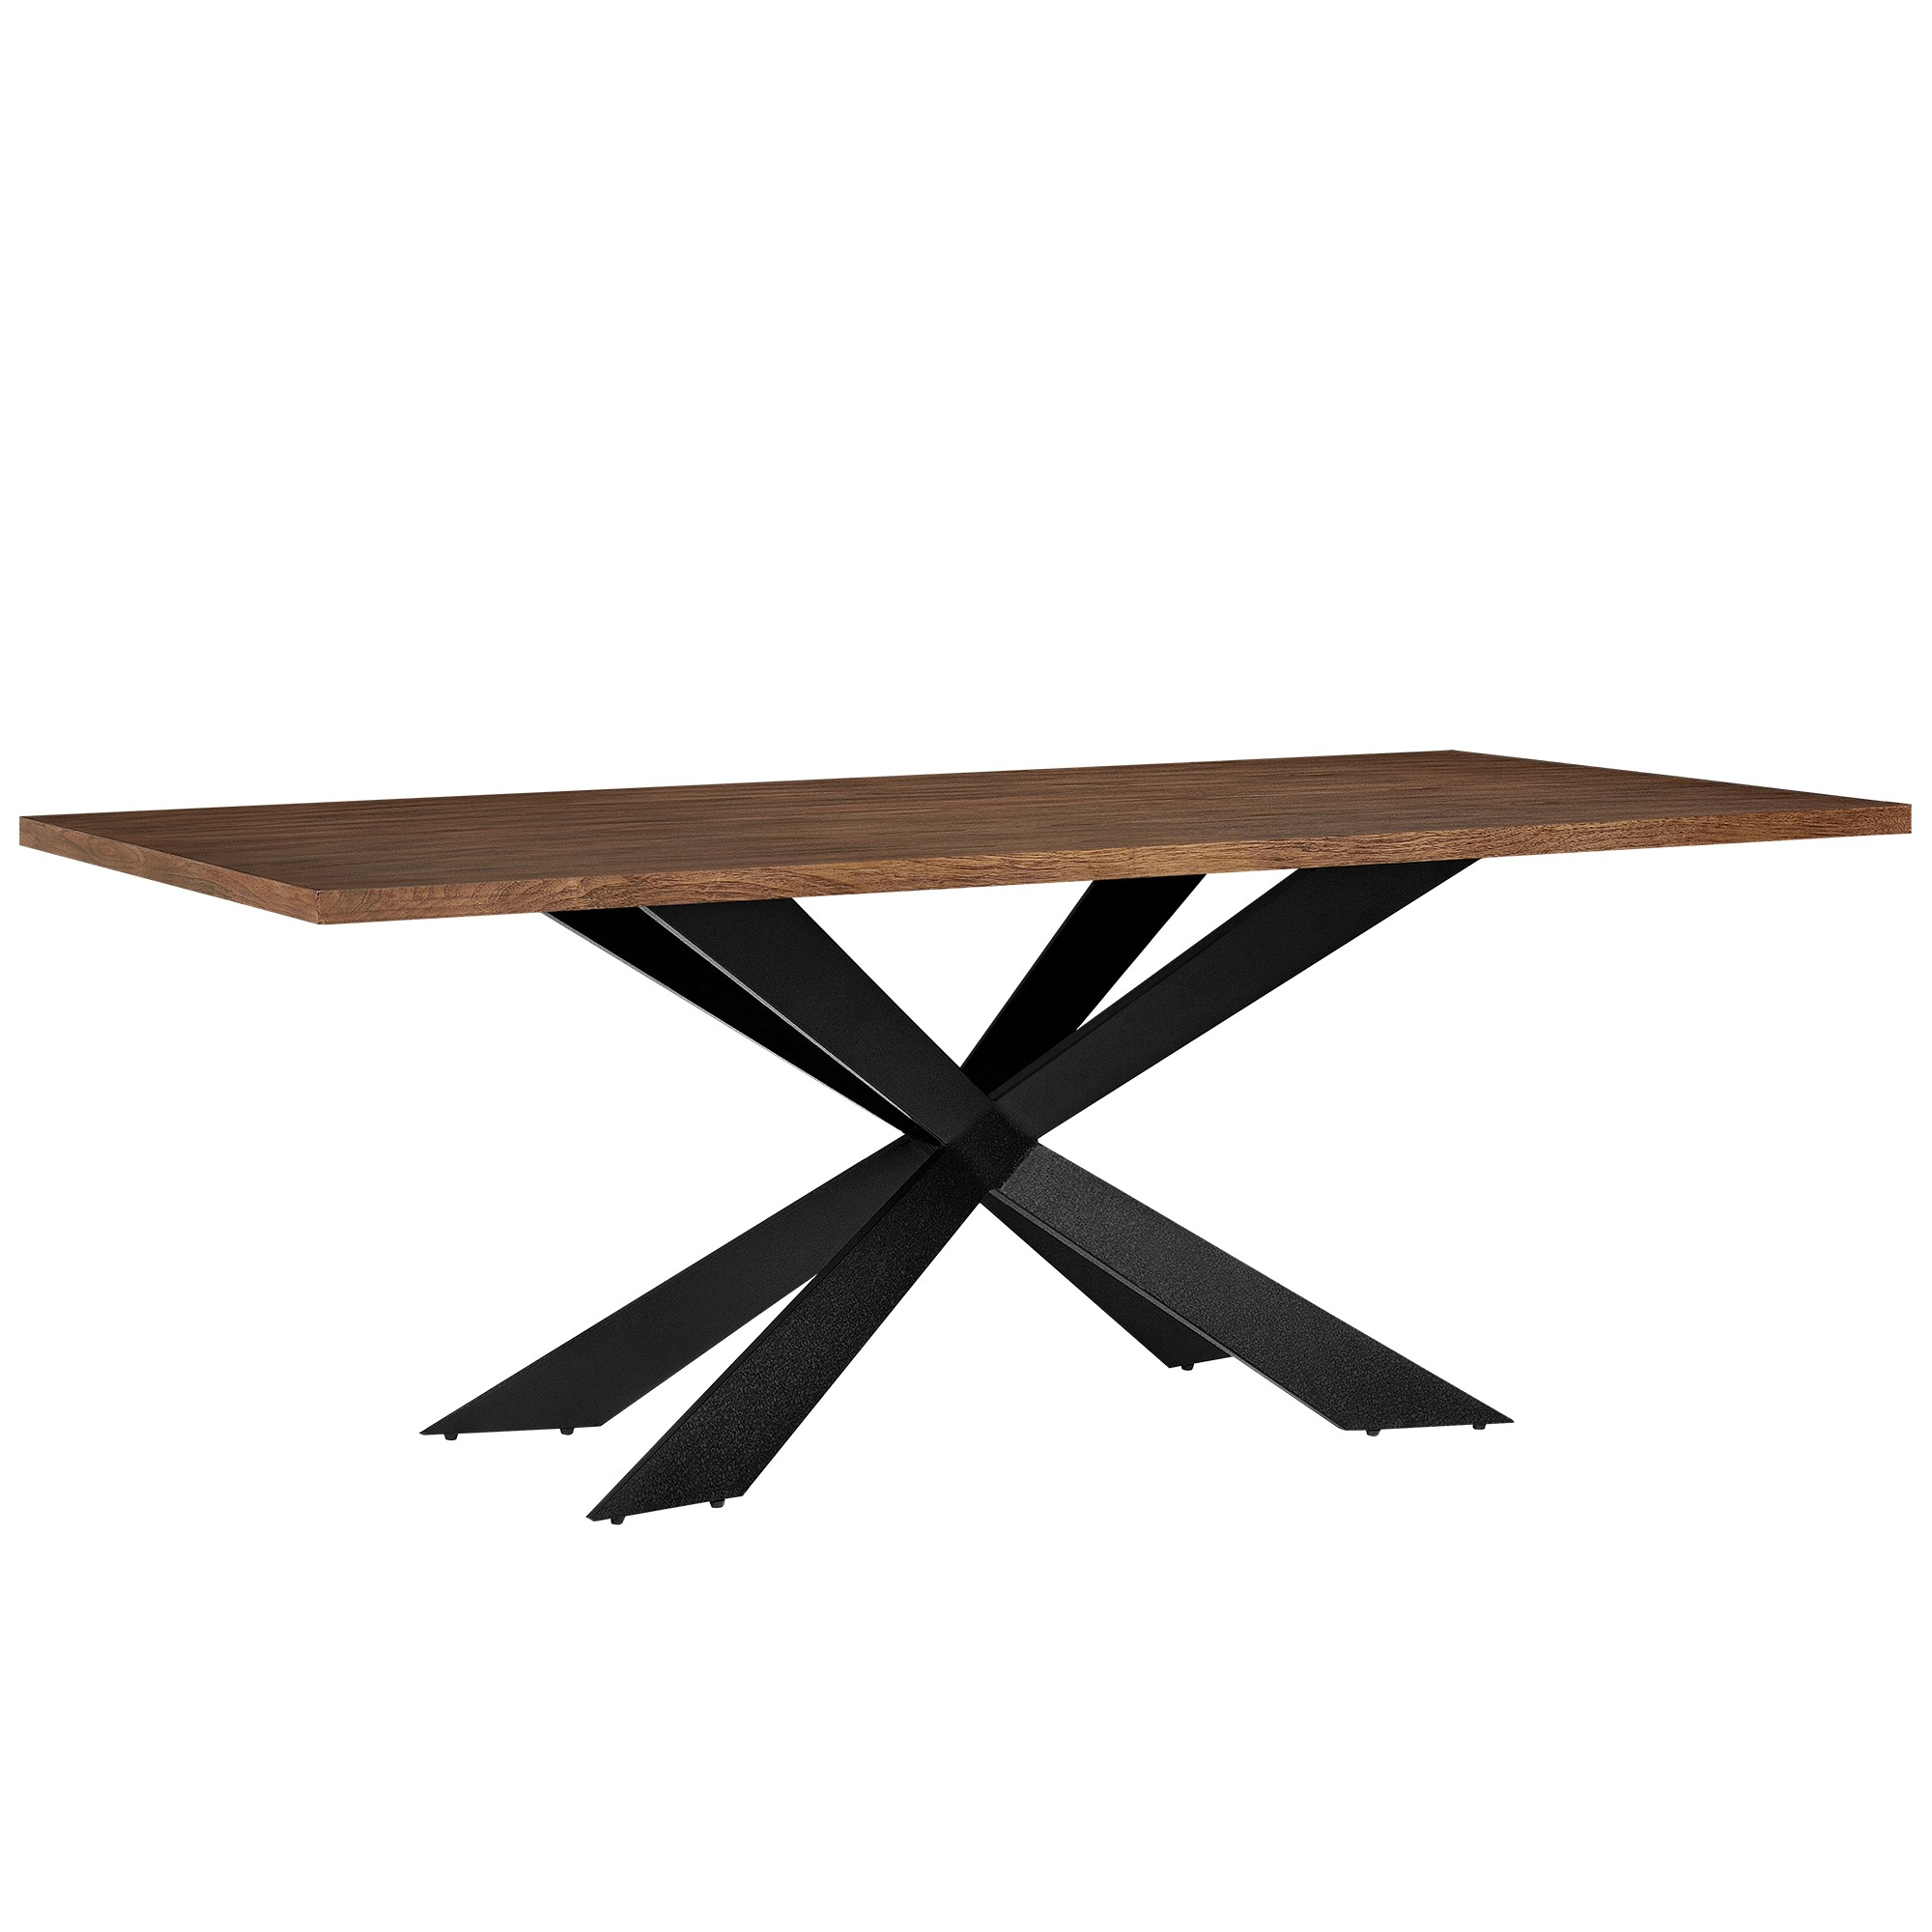 Table En Fer Table En Bois Et Fer 200 X 100 Cm Pour Tables A 498 05